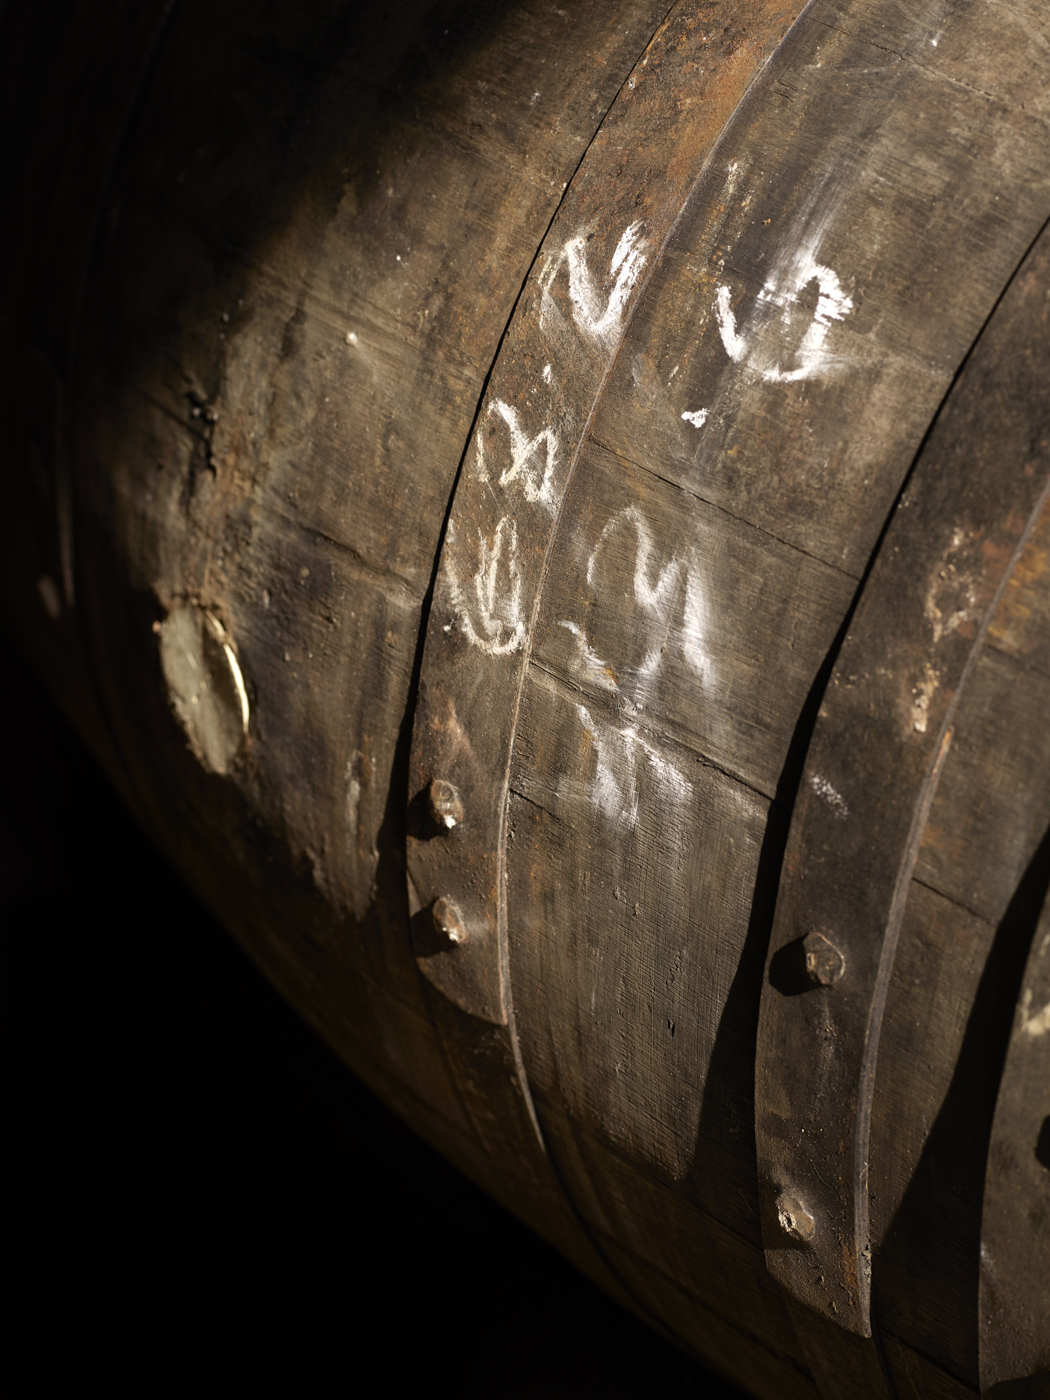 A detail of a cask containing 40yr old Whisky.